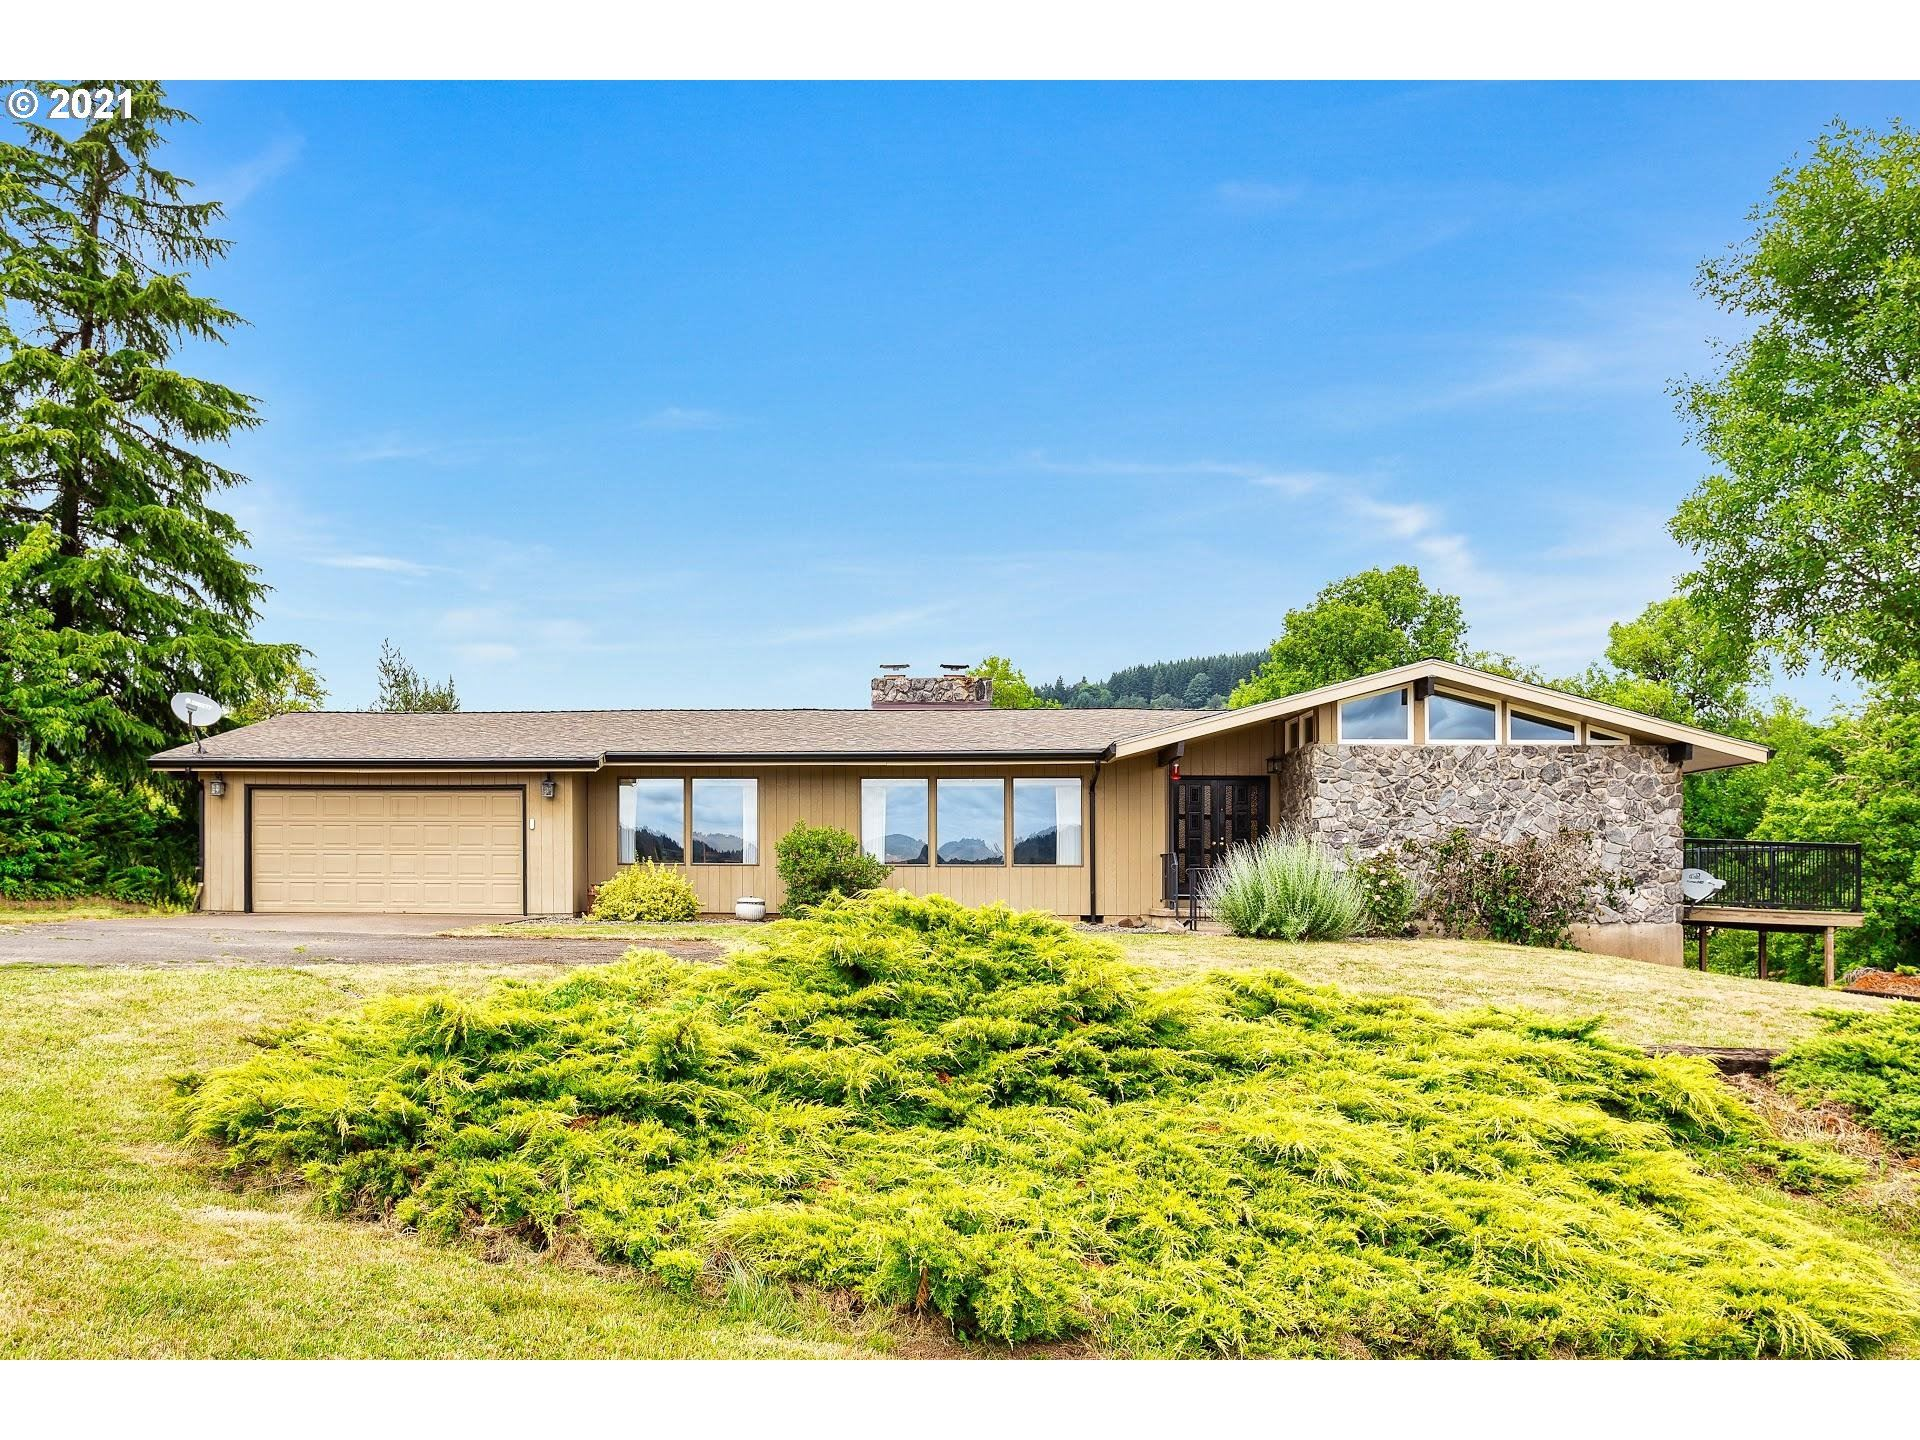 Photo of 26630 SW THOMSON MILL RD, Sheridan, OR 97378 (MLS # 21337767)